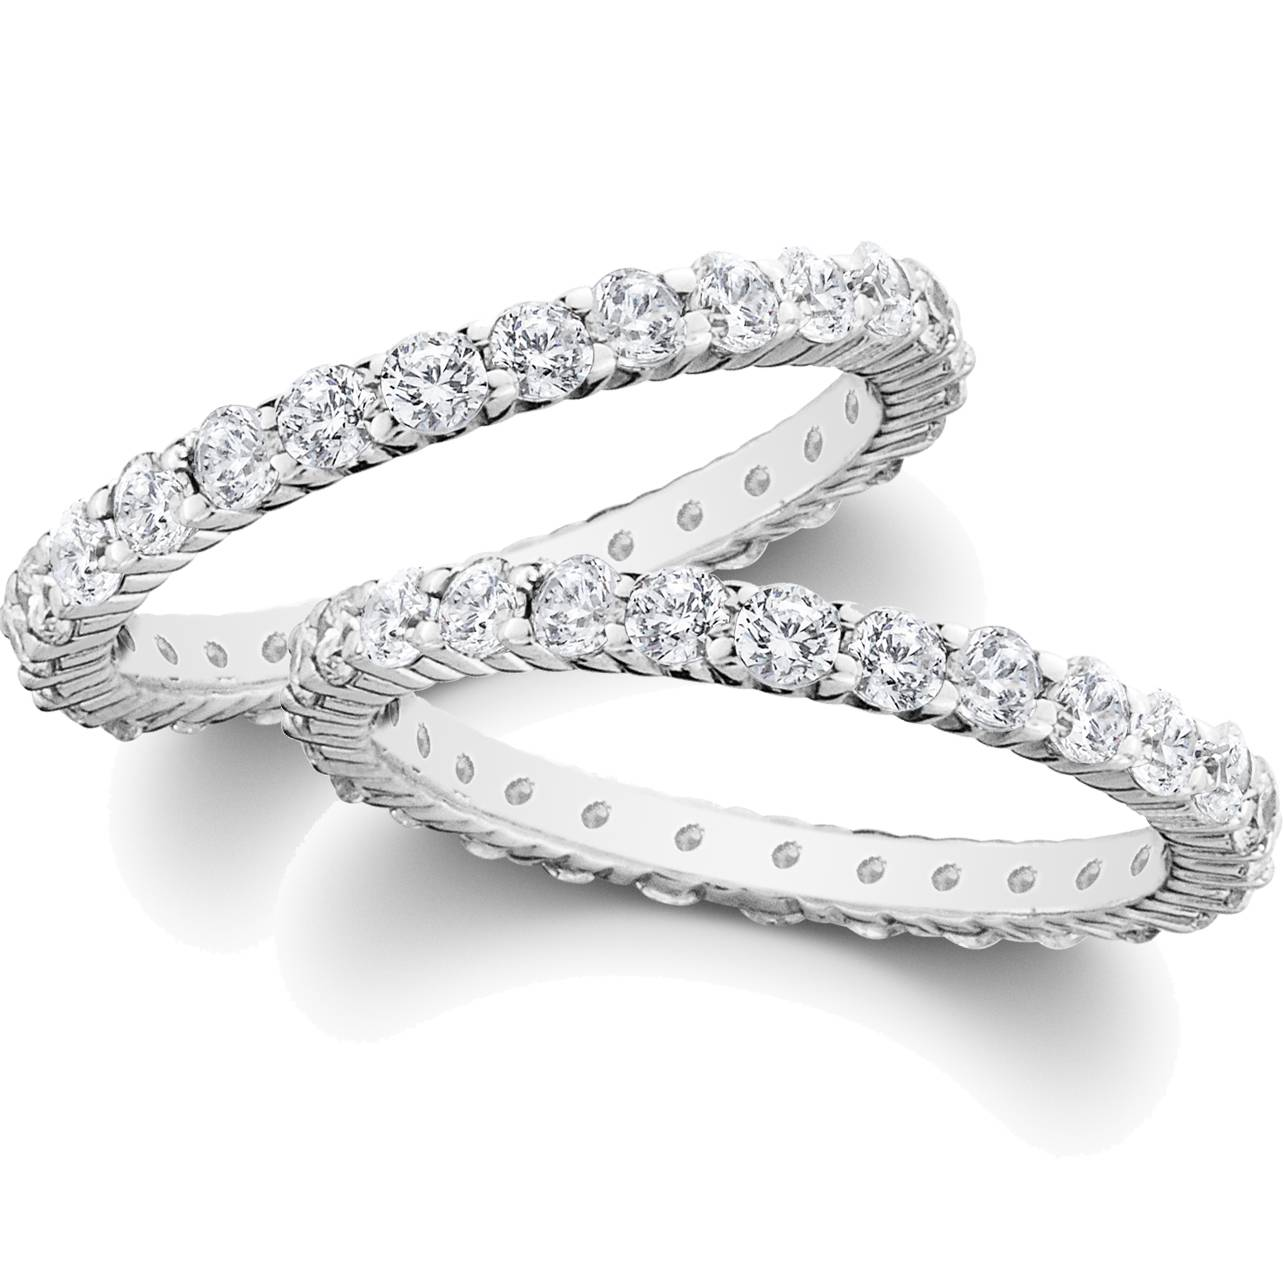 2ct diamond eternity stackable wedding rings set 14k white gold womens